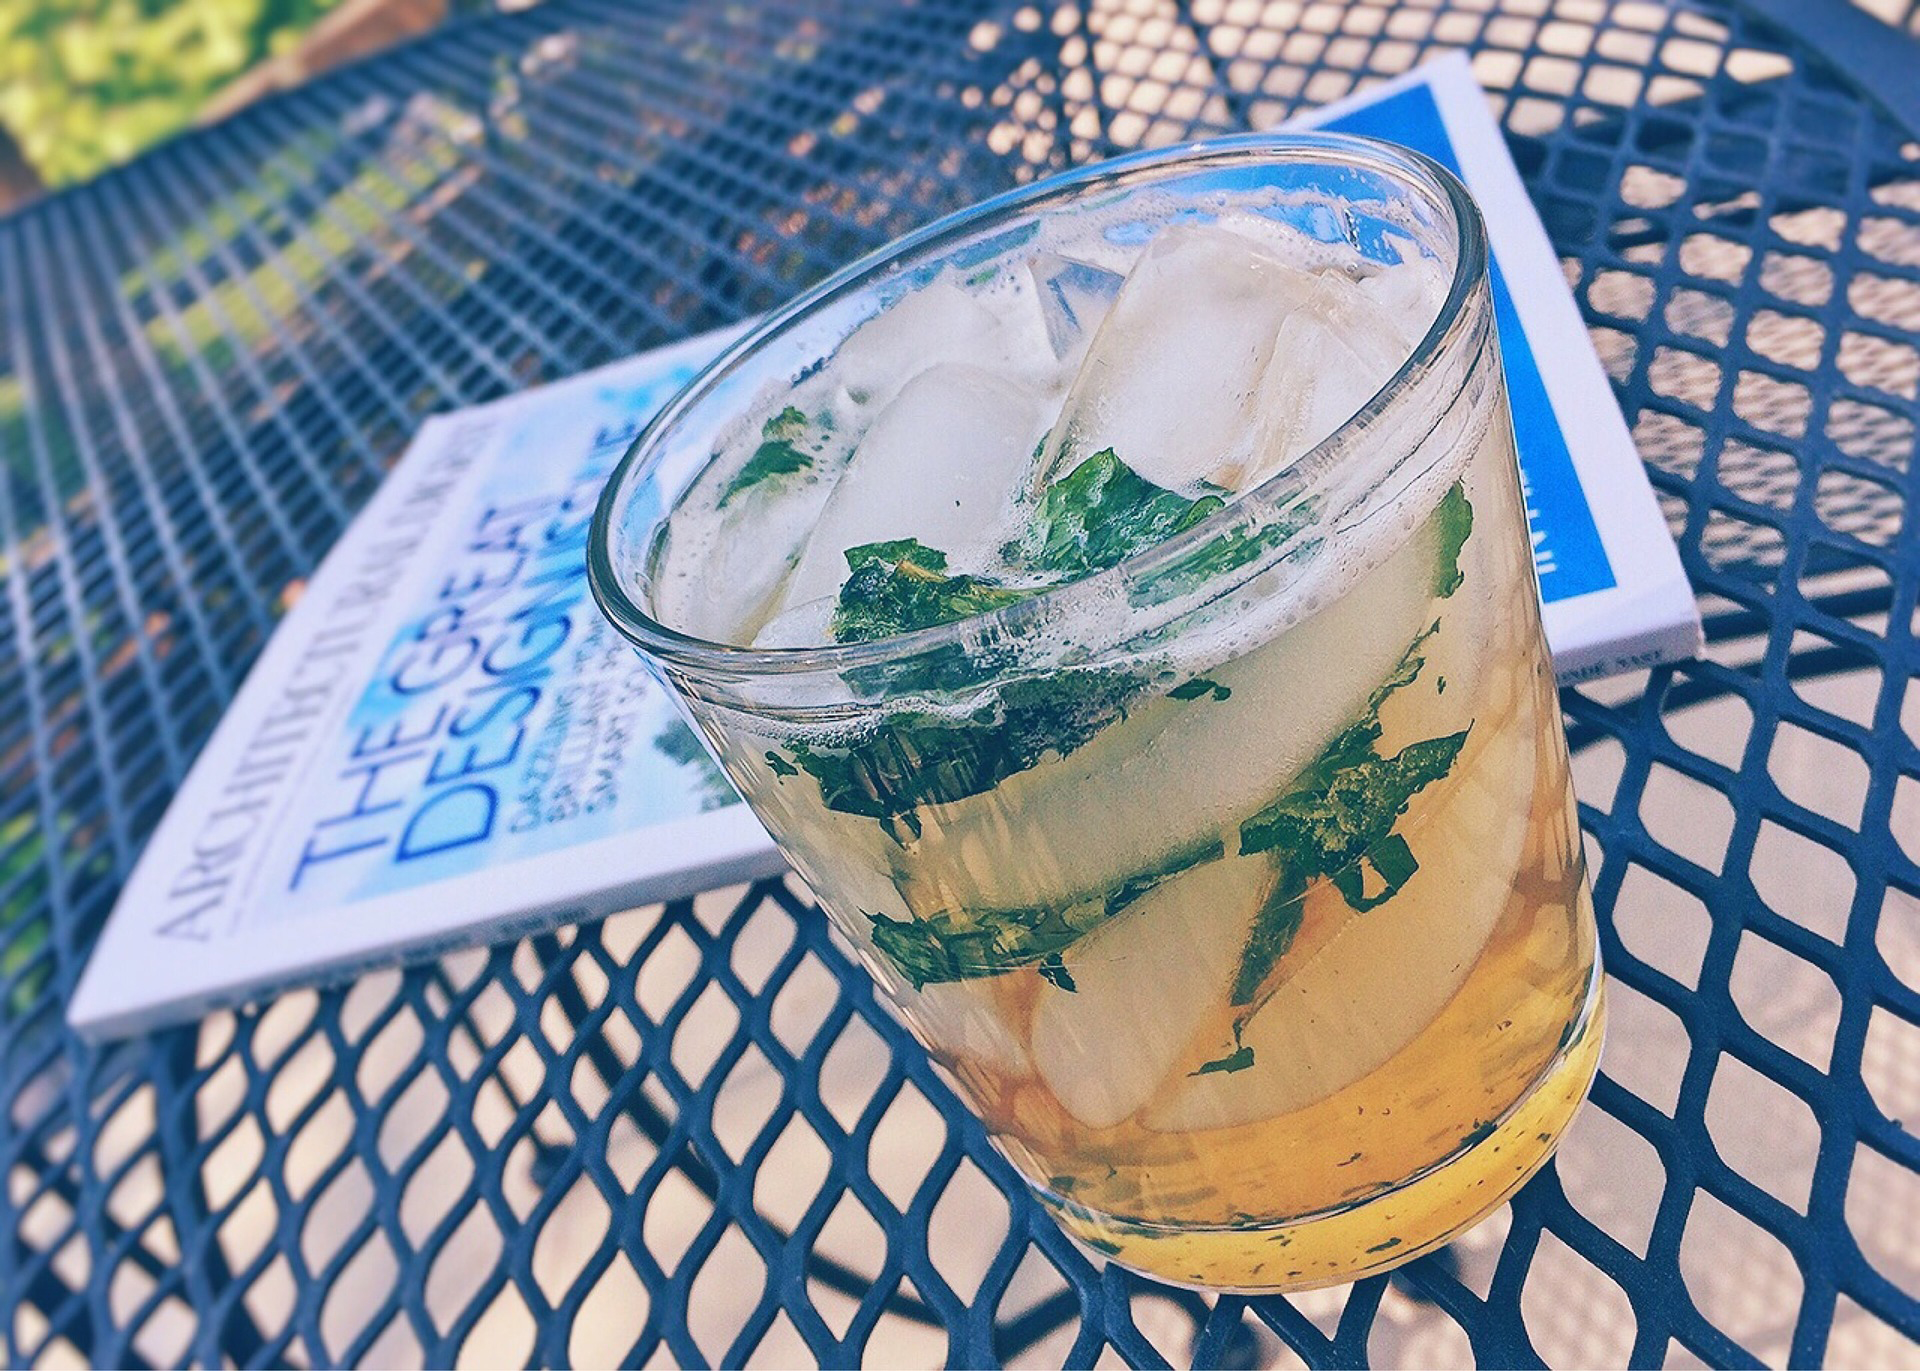 Mint julep cocktail on a patio table.